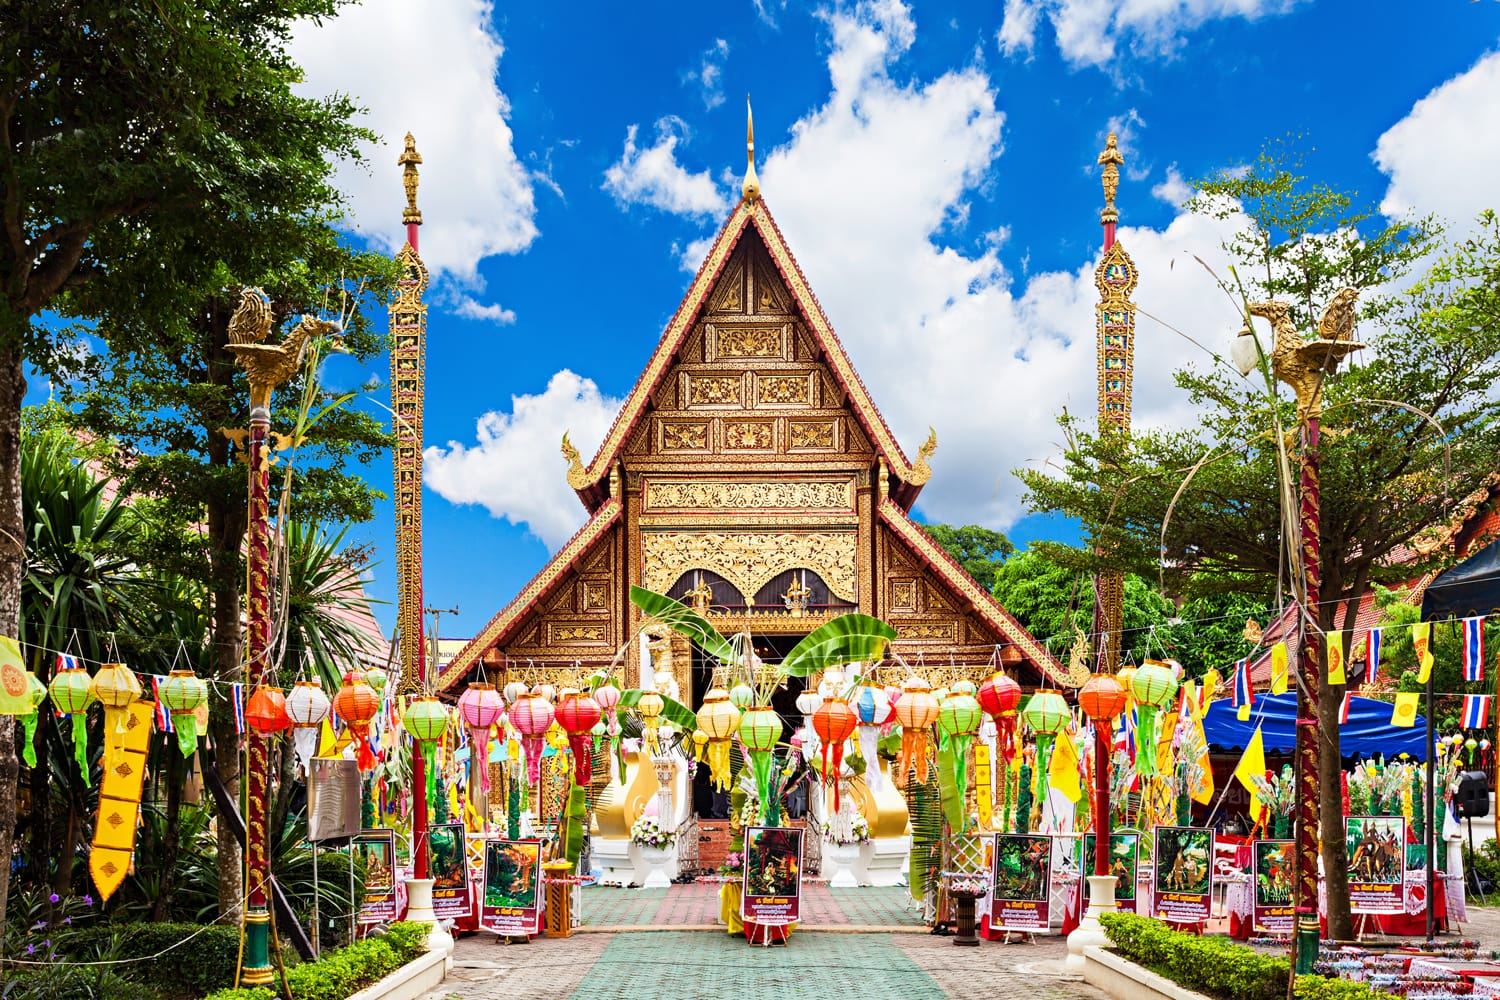 Wat Phra Singh is a buddhist temple located in Chiang Rai, northern Thailand